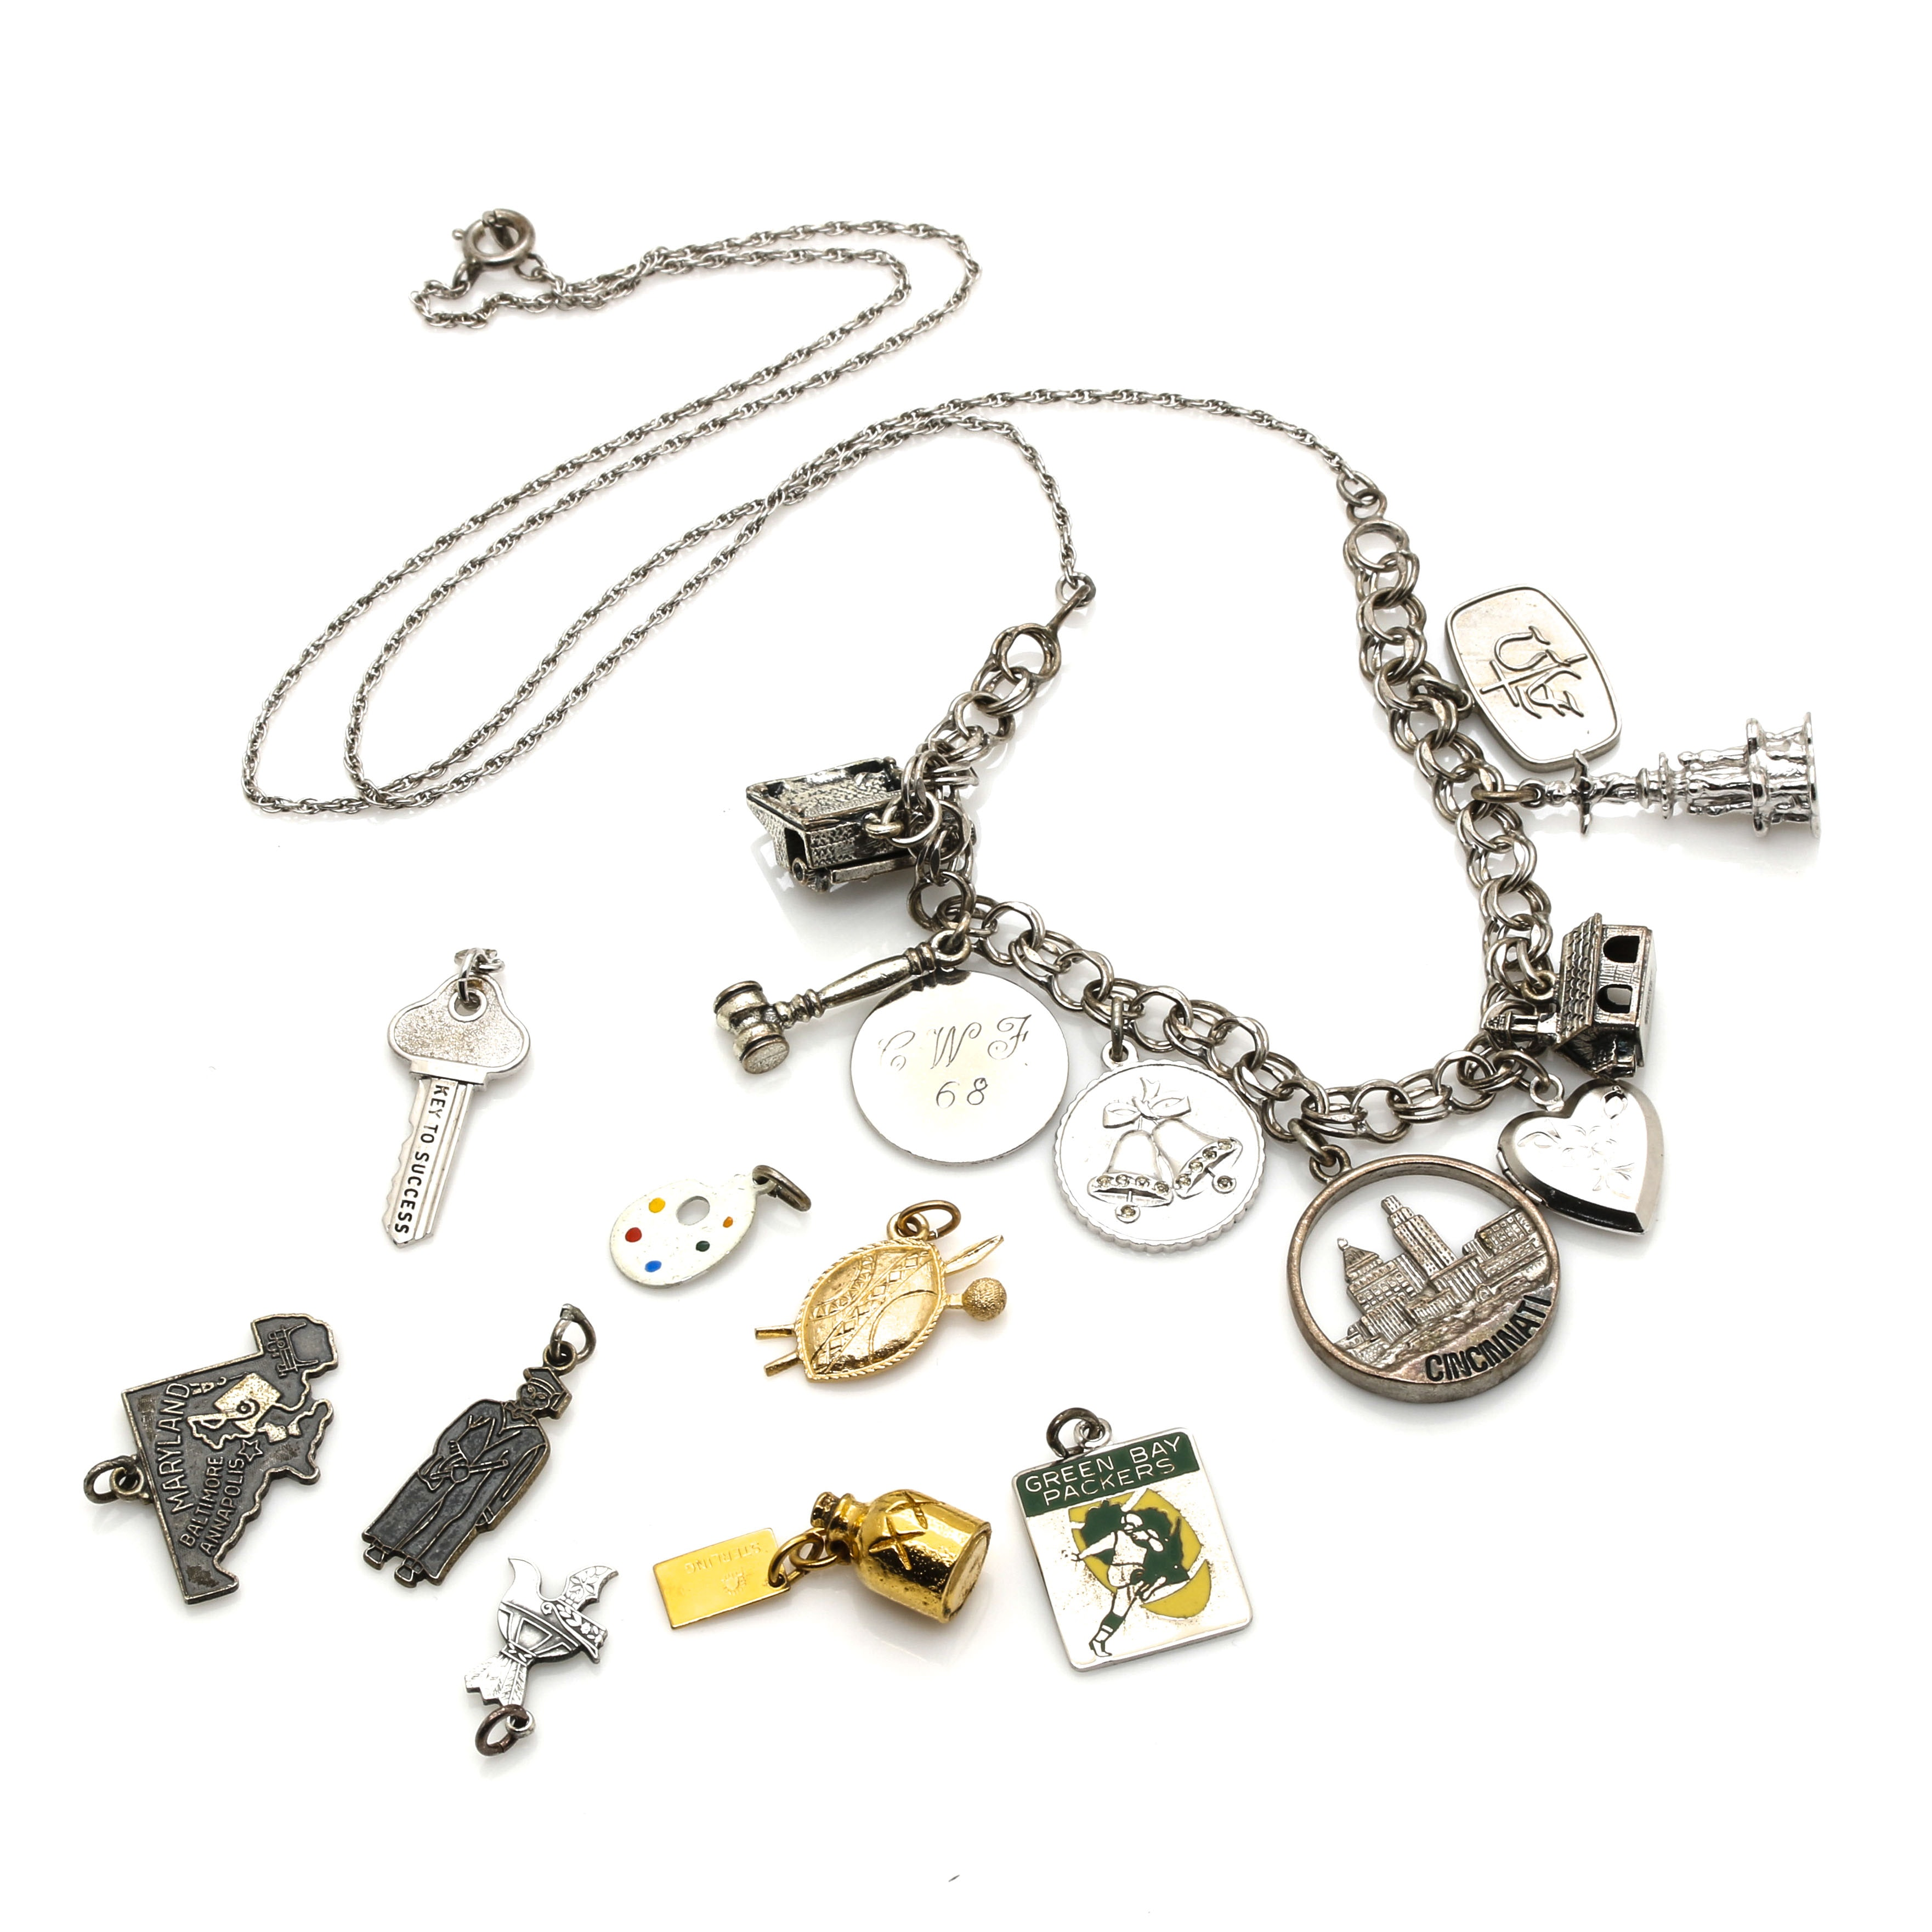 Sterling Silver Charms and Charm Necklace Featuring Danecraft